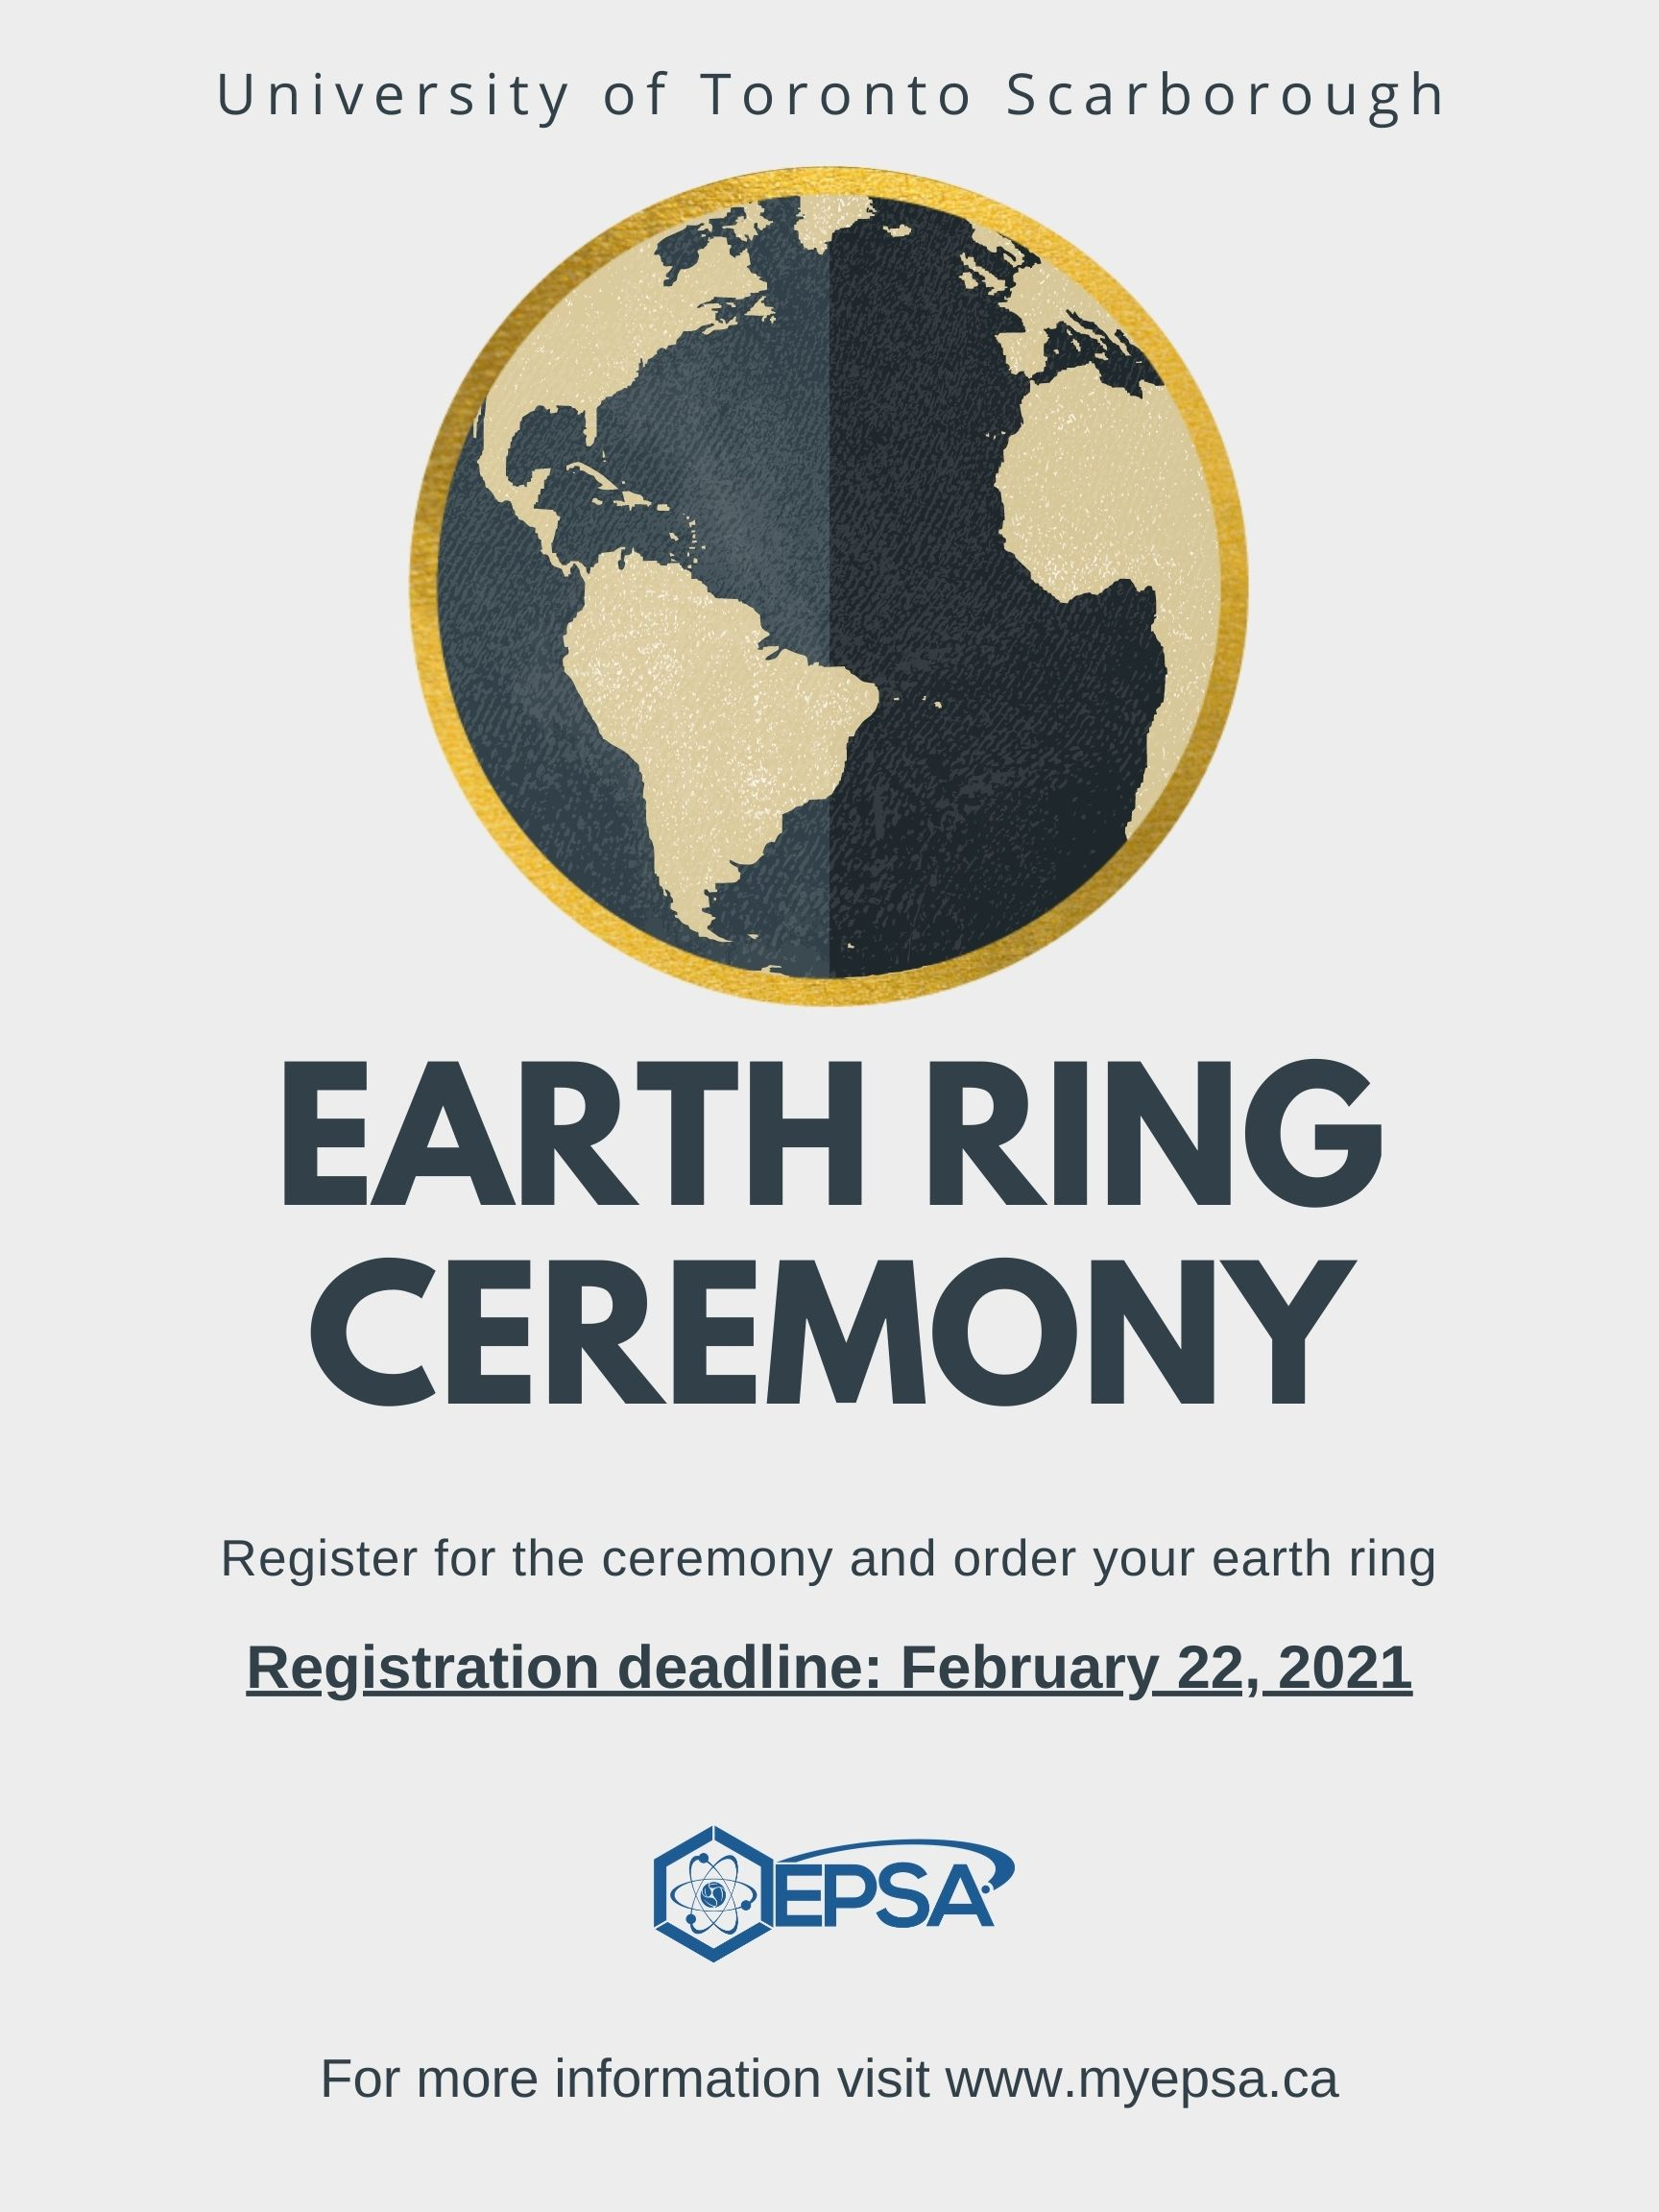 Earth RINg Ceremony (3)